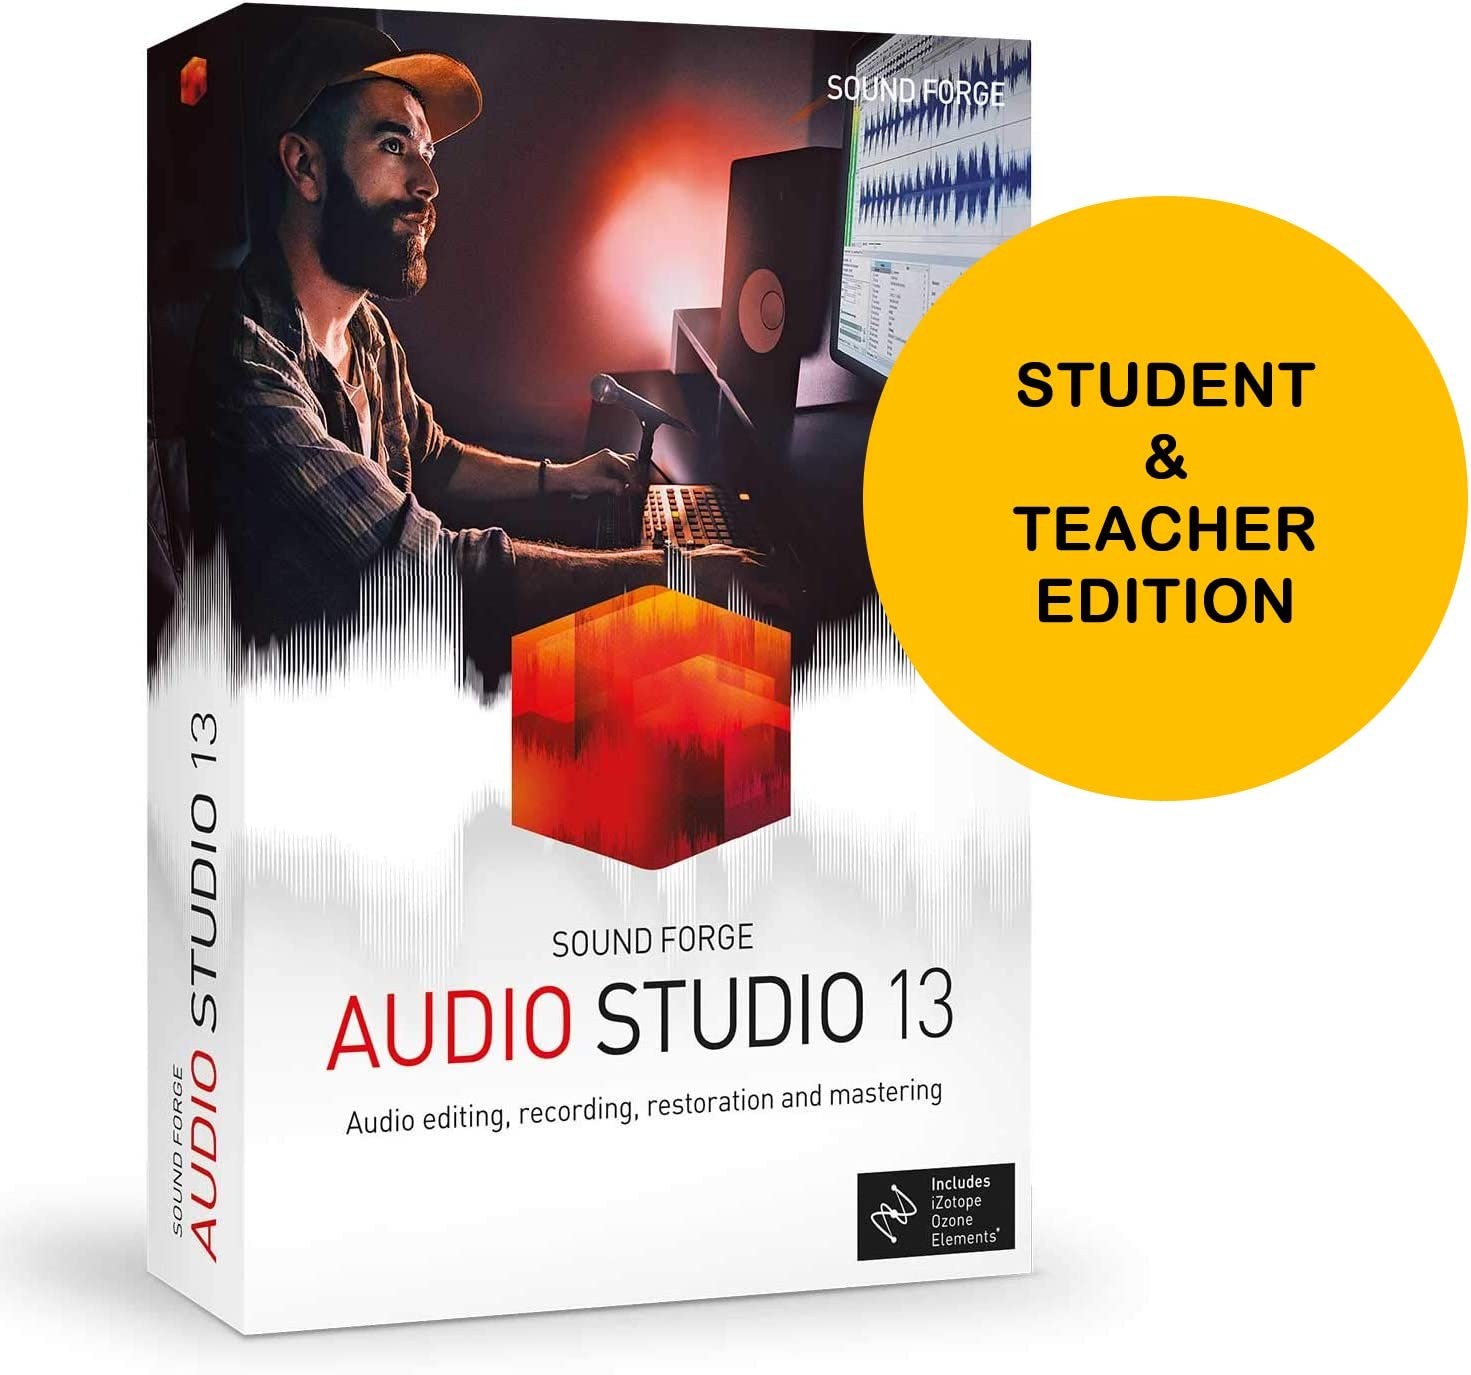 MAGIX Sound Forge Audio Studio 13 Student and Teacher Edition - Audio Editing, Recording, Restoration and Mastering